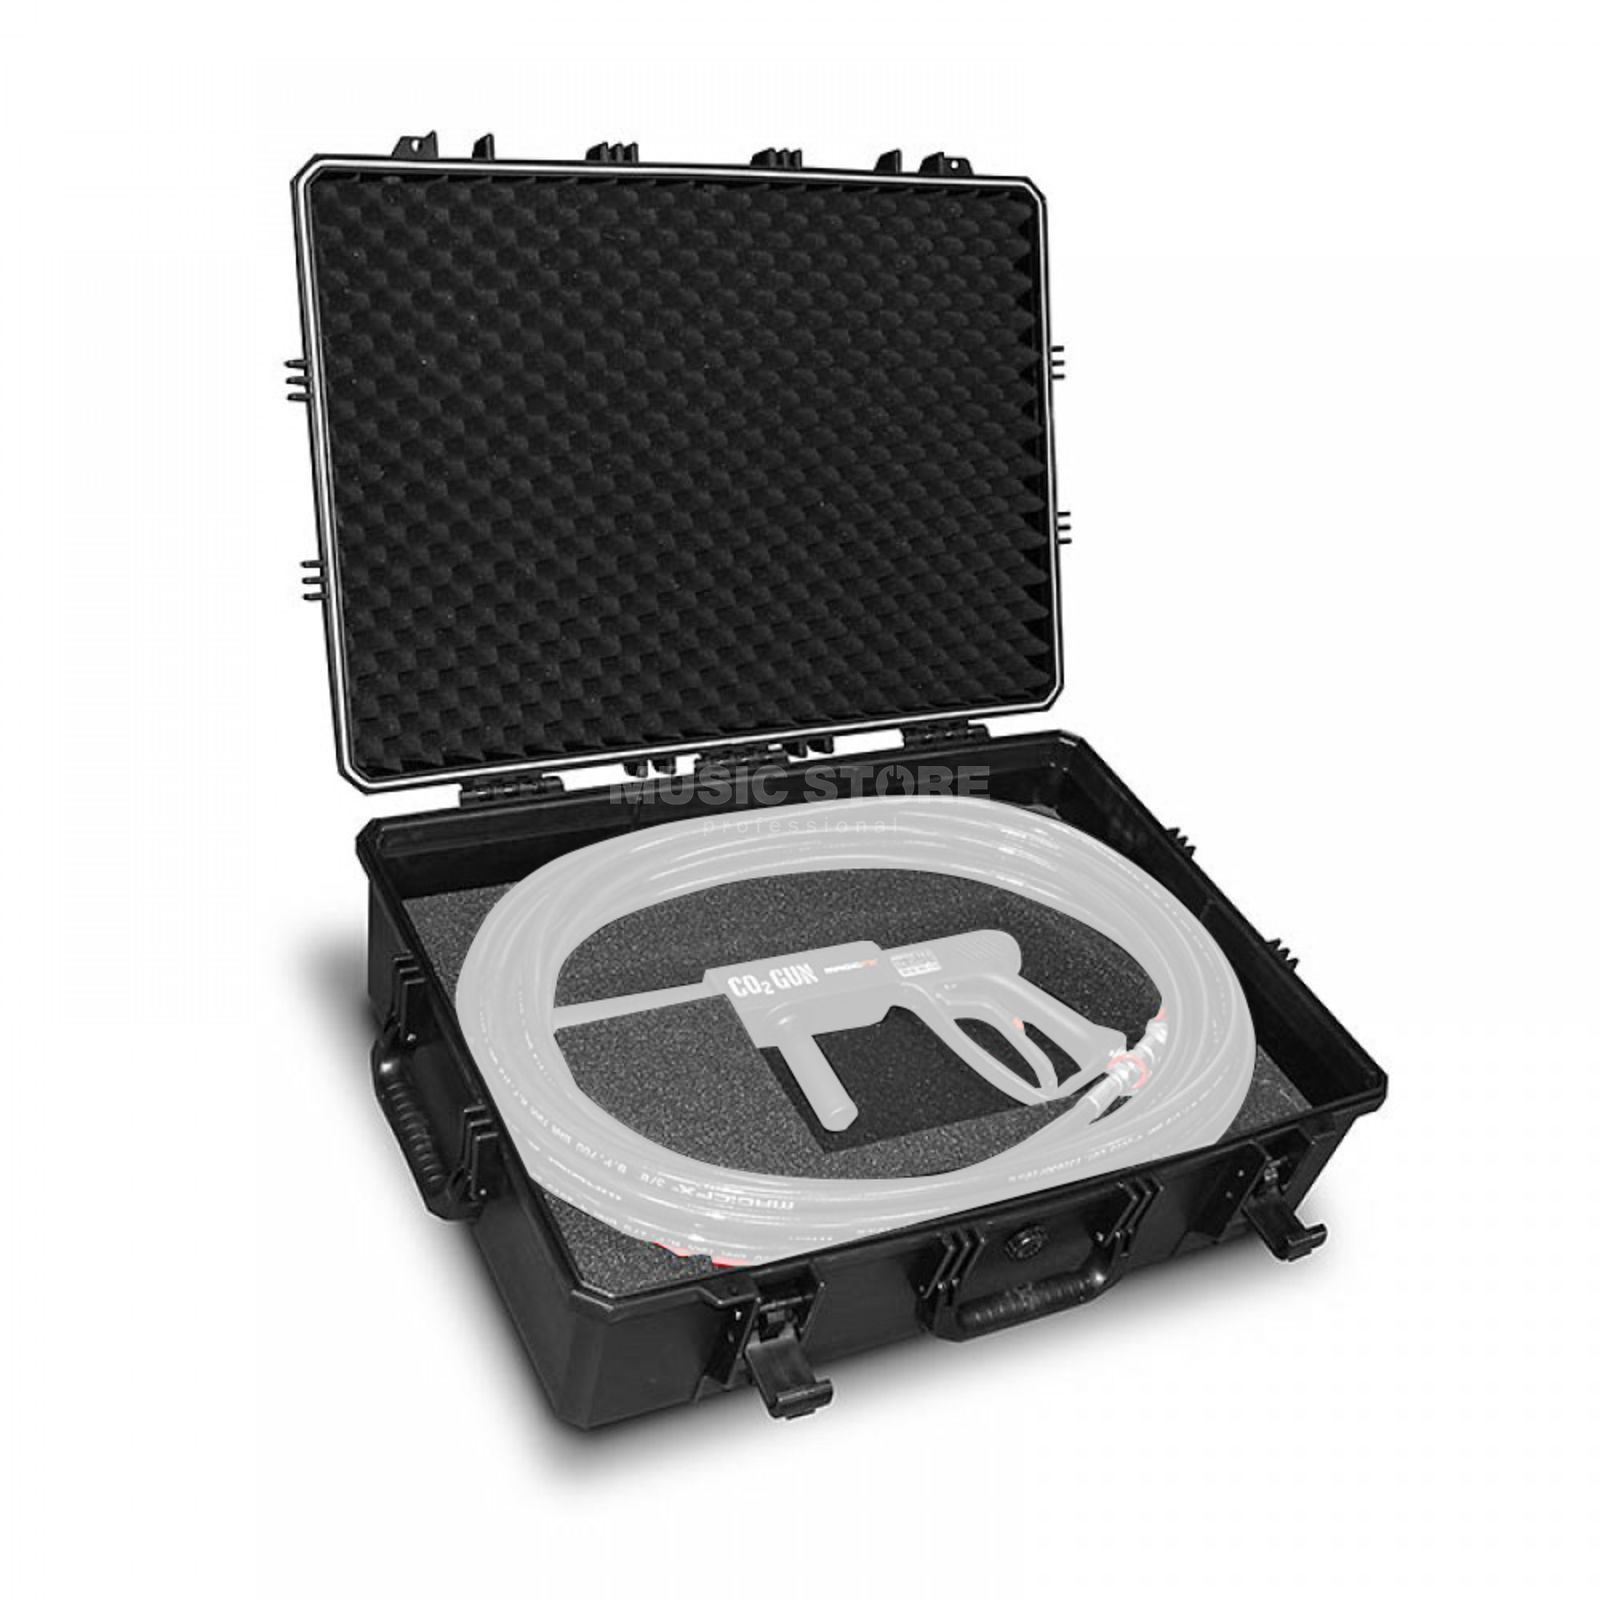 MagicFX Case for CO2 Gun Image du produit